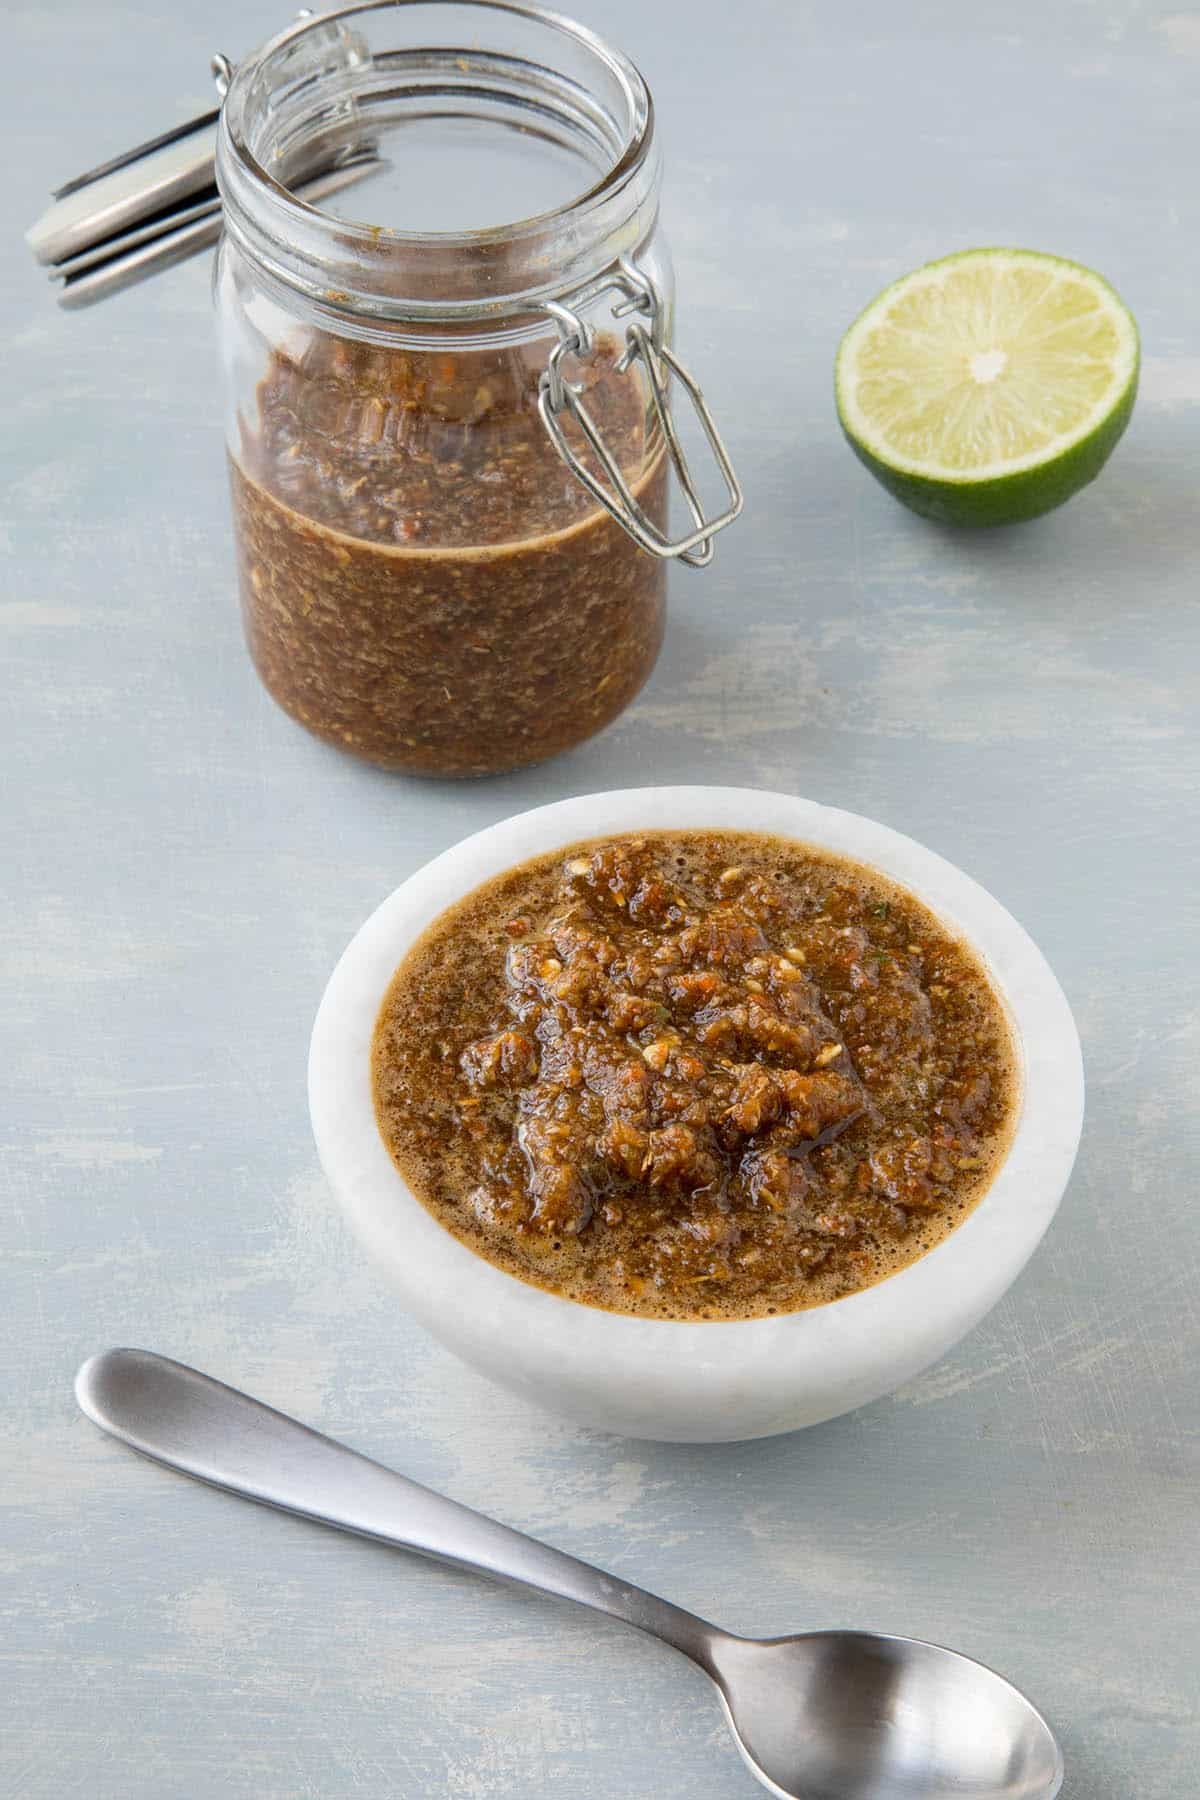 This Jamaican jerk sauce is in a bowl with some extra in a container, luxurious and spicy